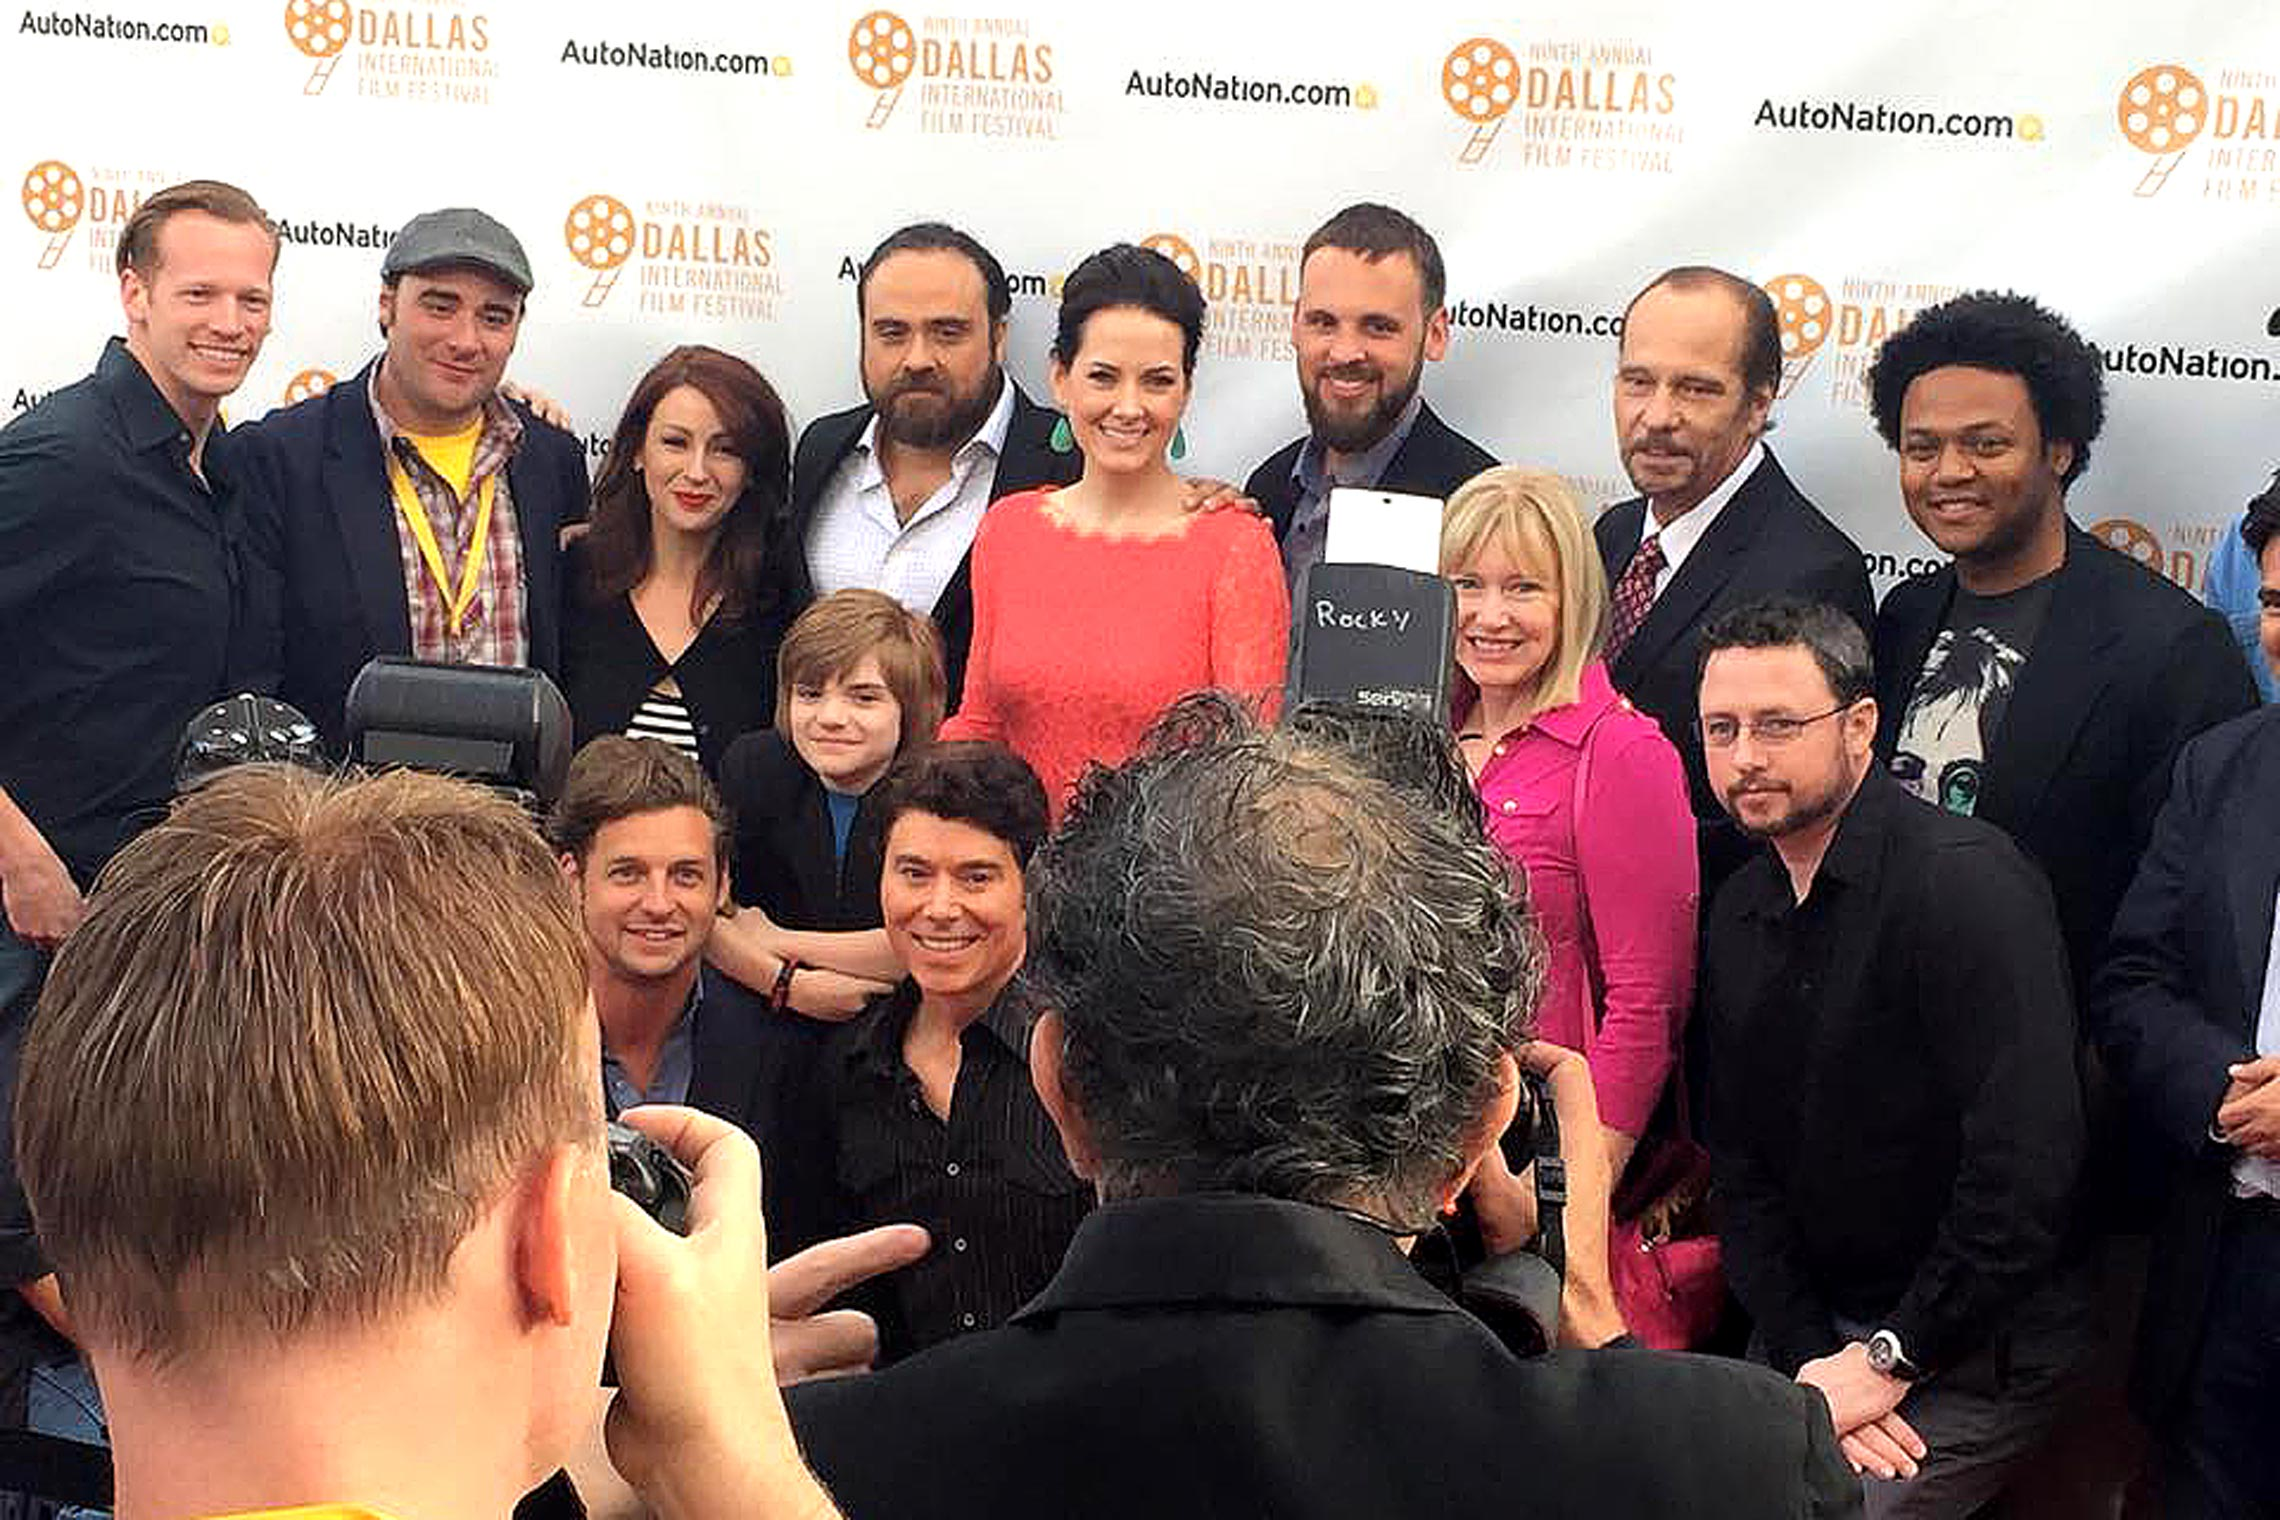 With the cast & directors, on the red carpet for <em>Kill or Be Killed</em> at the Dallas International Festival.